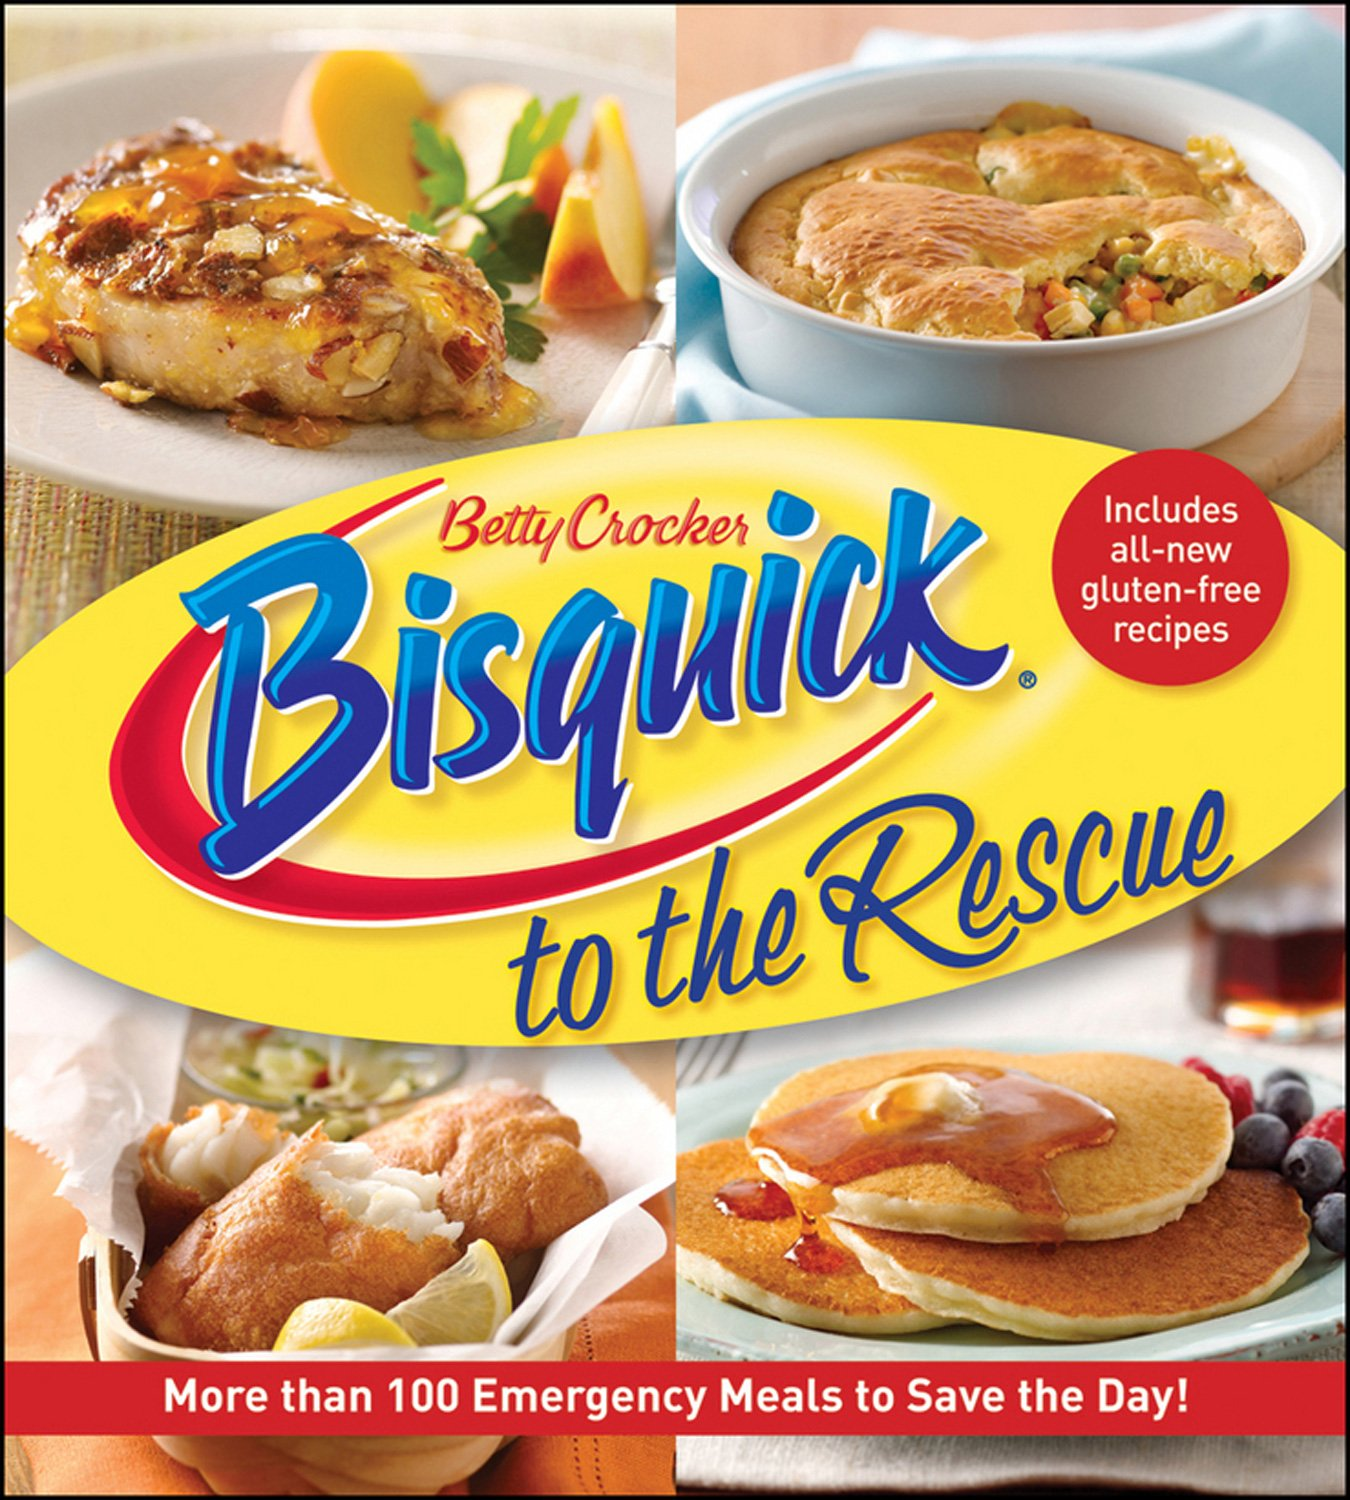 Betty Crocker Bisquick Rescue Cooking